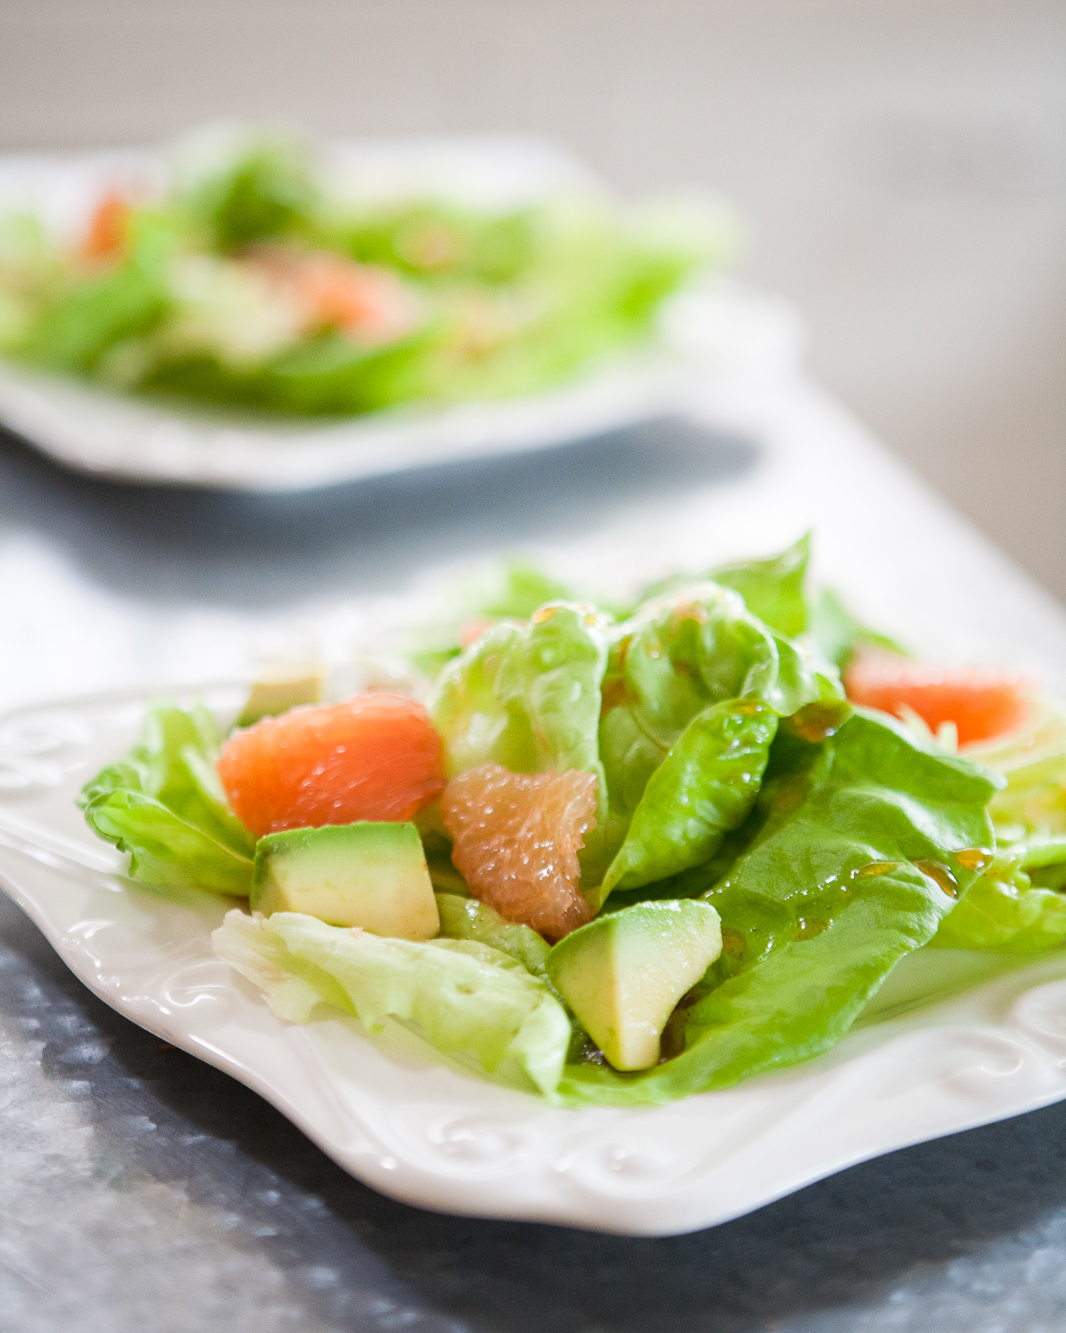 Butter Leaf salad with avocado and grapefruit on a white plate.